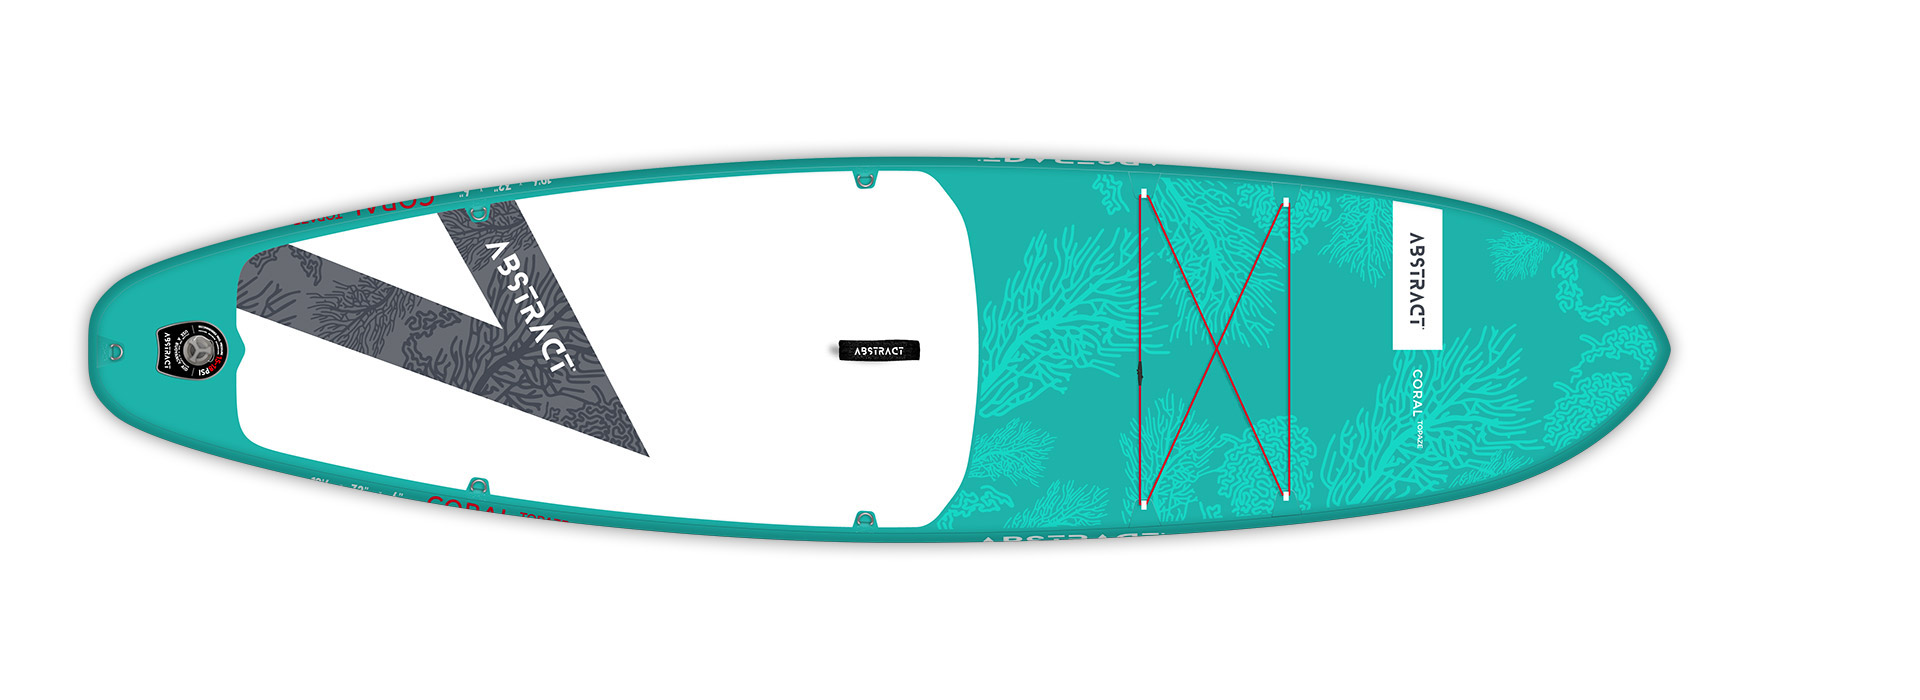 Planche de paddle Board gonflable Coral Topaze (Bleu) Abstract 2021